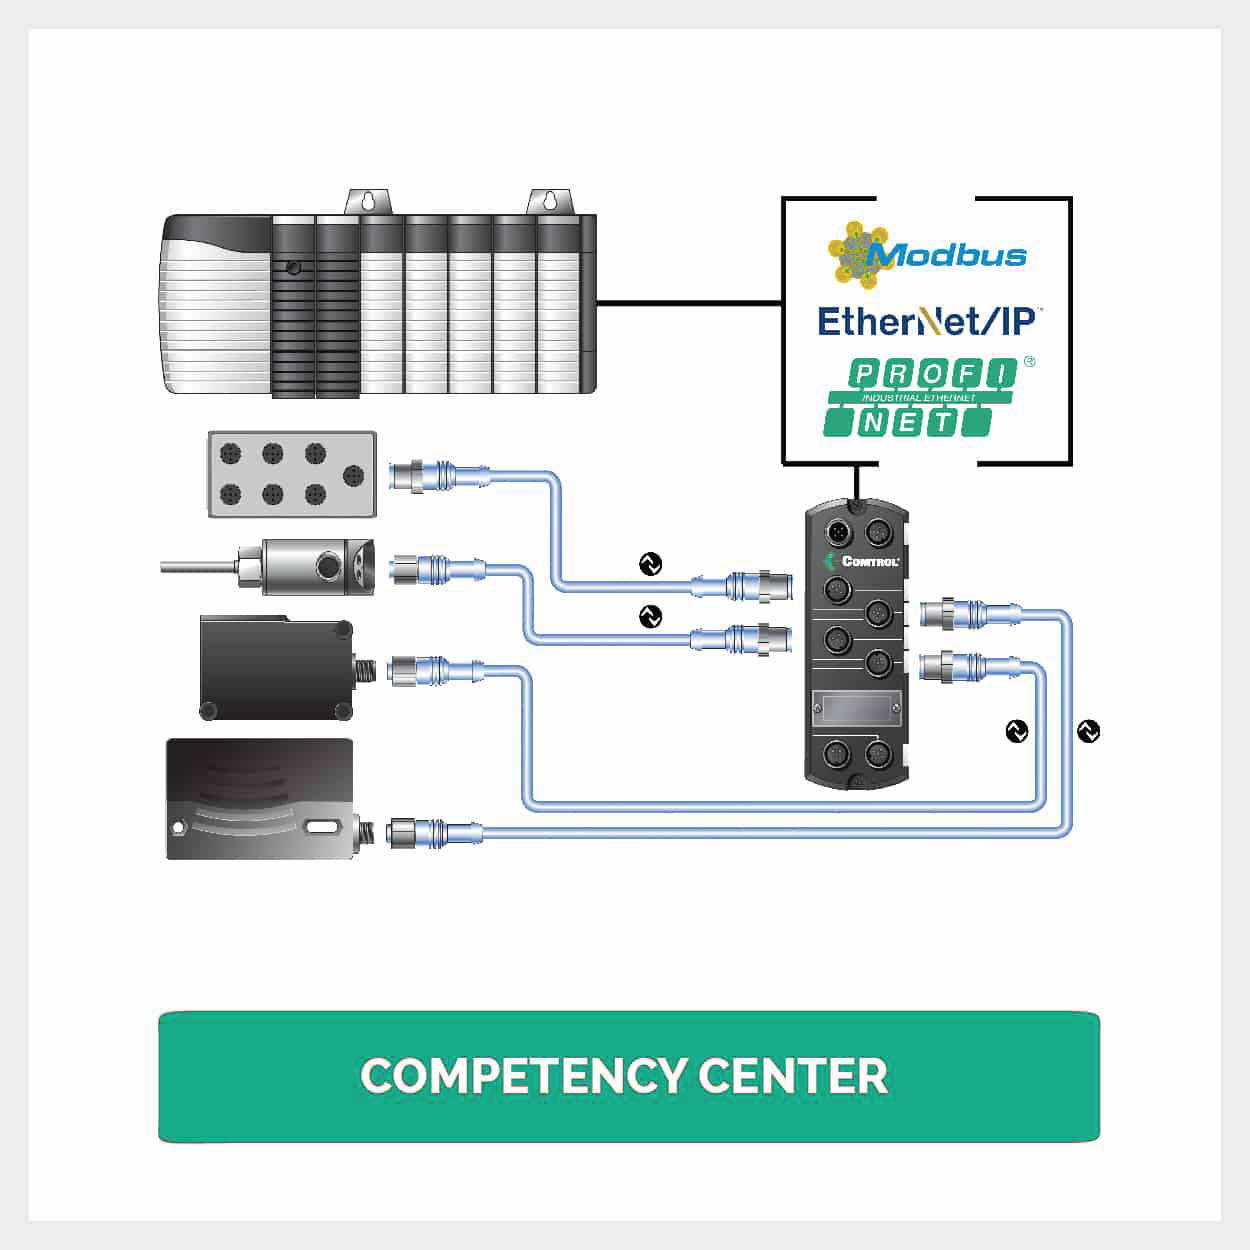 Competency Center2 - IO-Link Master Gateway EtherNet/IP